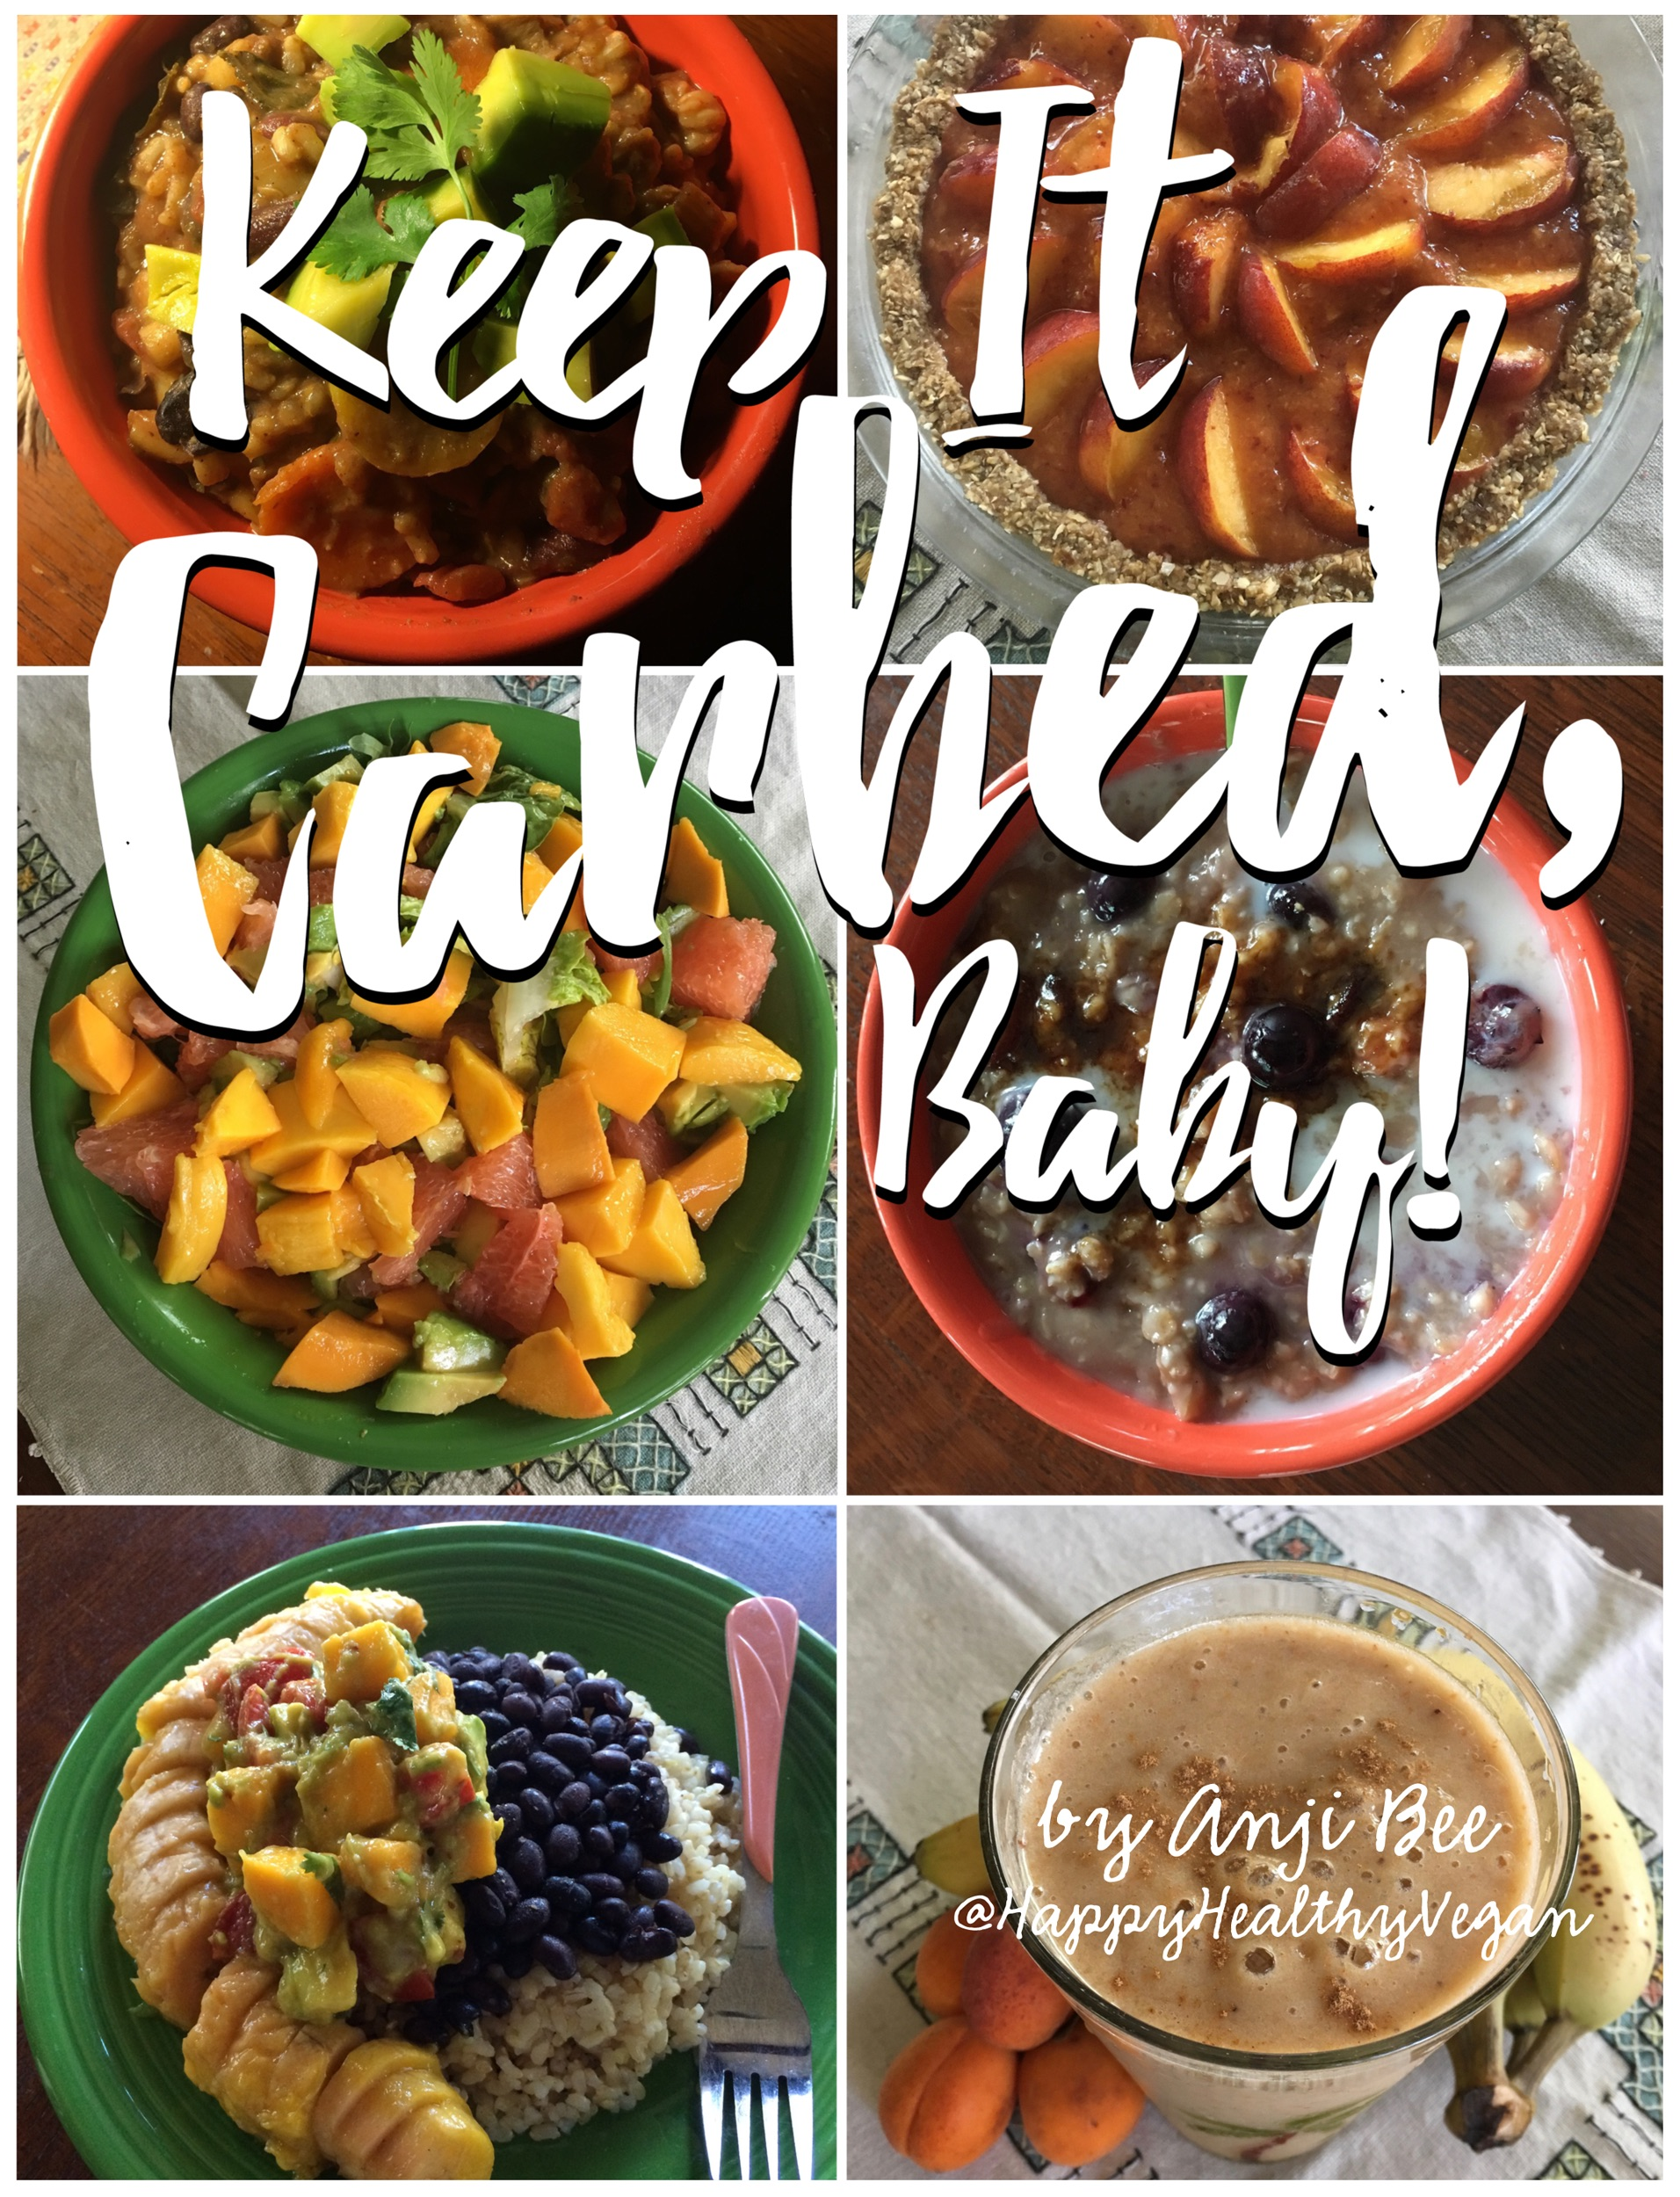 Keep it carbed baby happy healthy vegan keep it carbed baby forumfinder Gallery